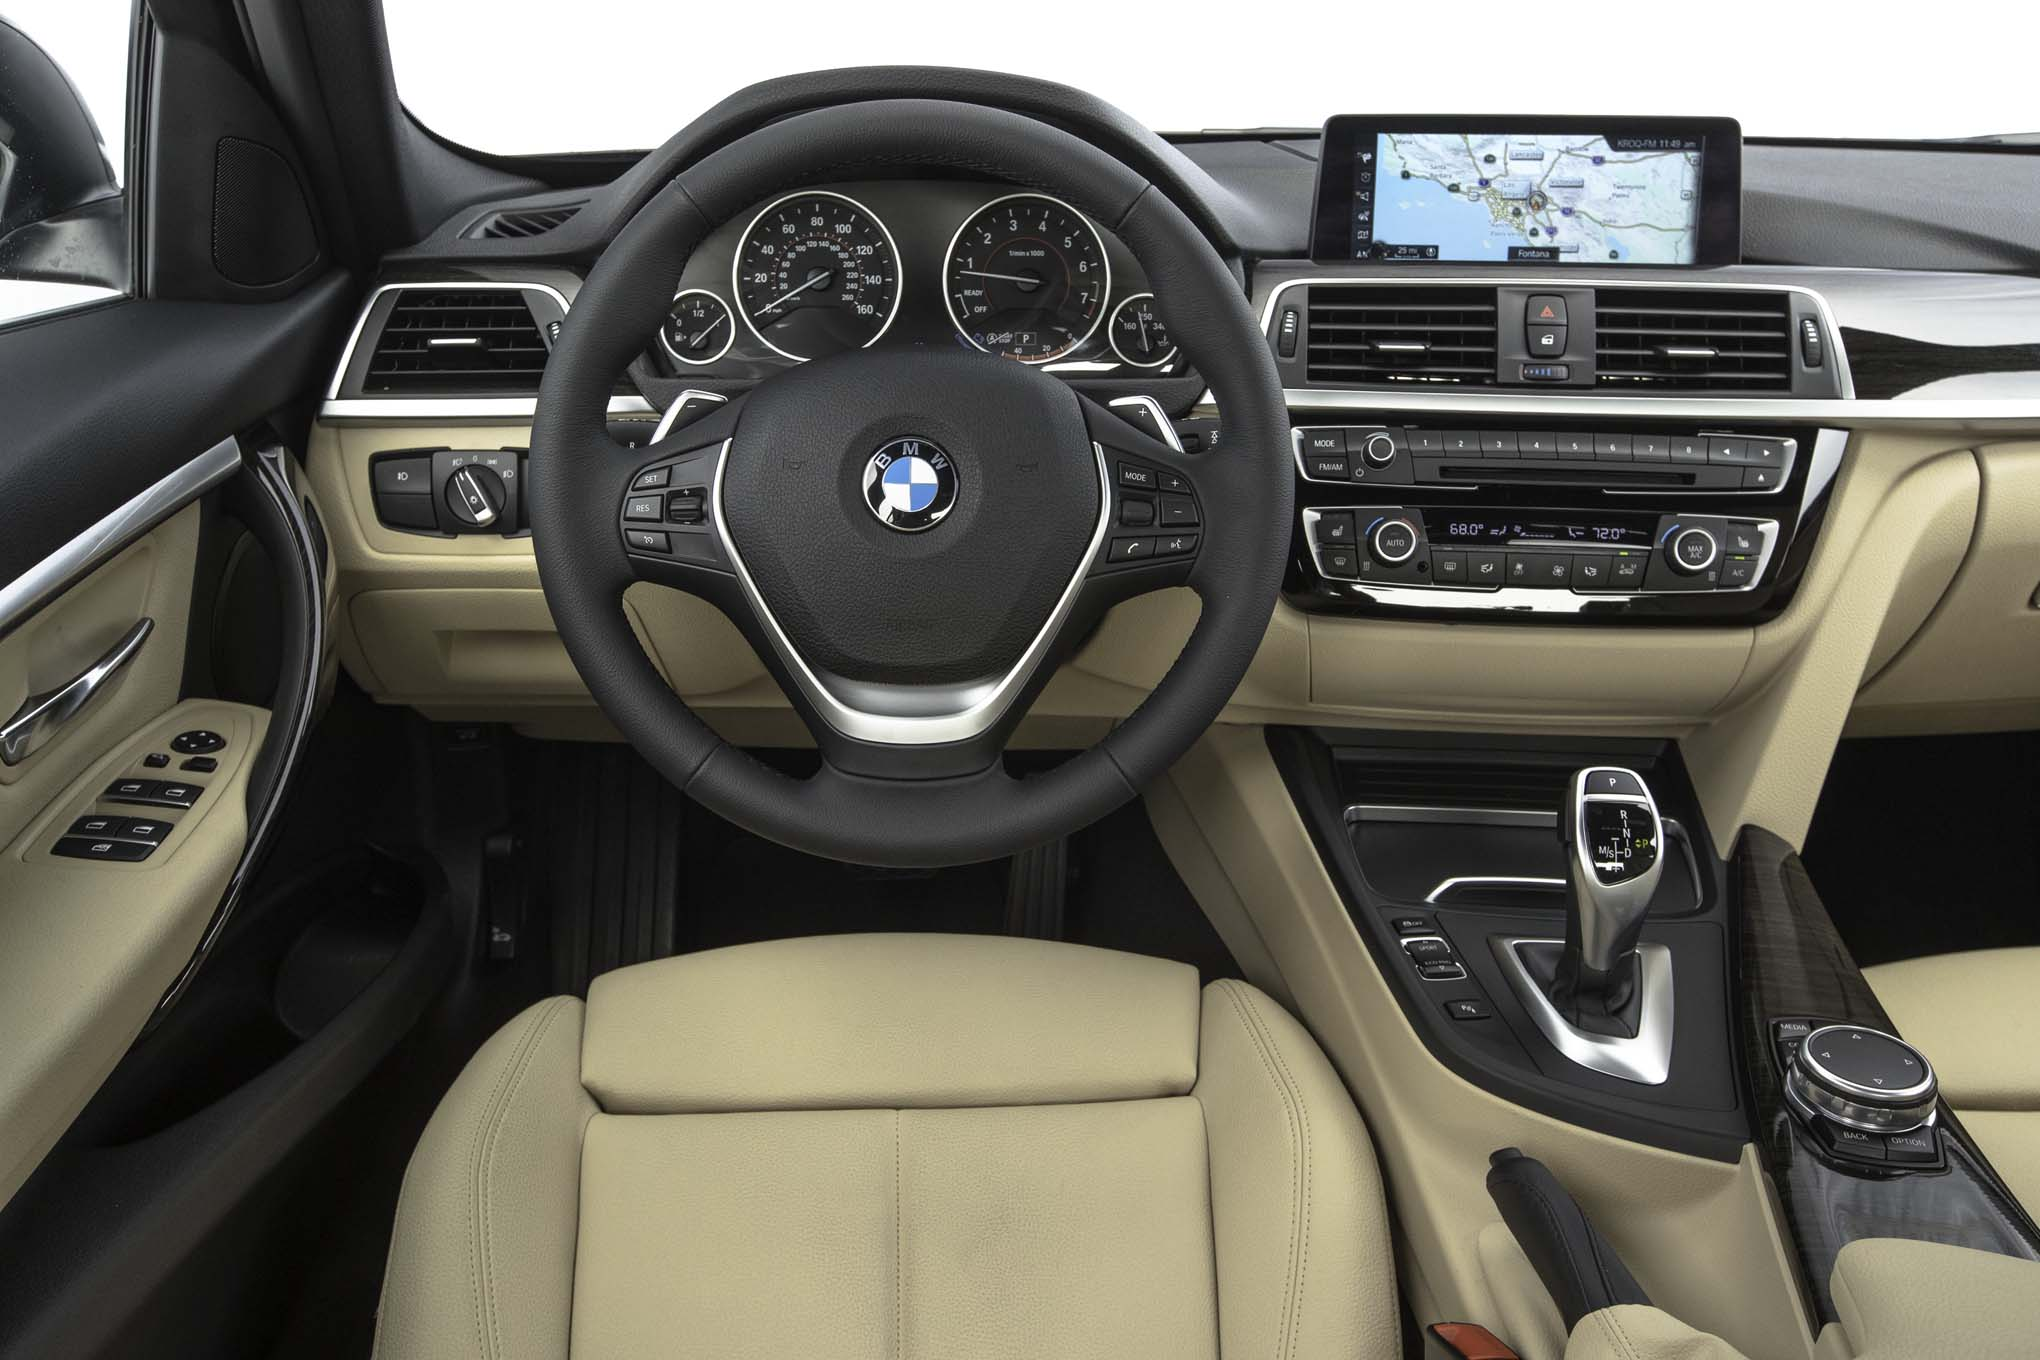 Interieur X5 2007 2017 Bmw 330i | Cars Exclusive Videos And Photos Updates